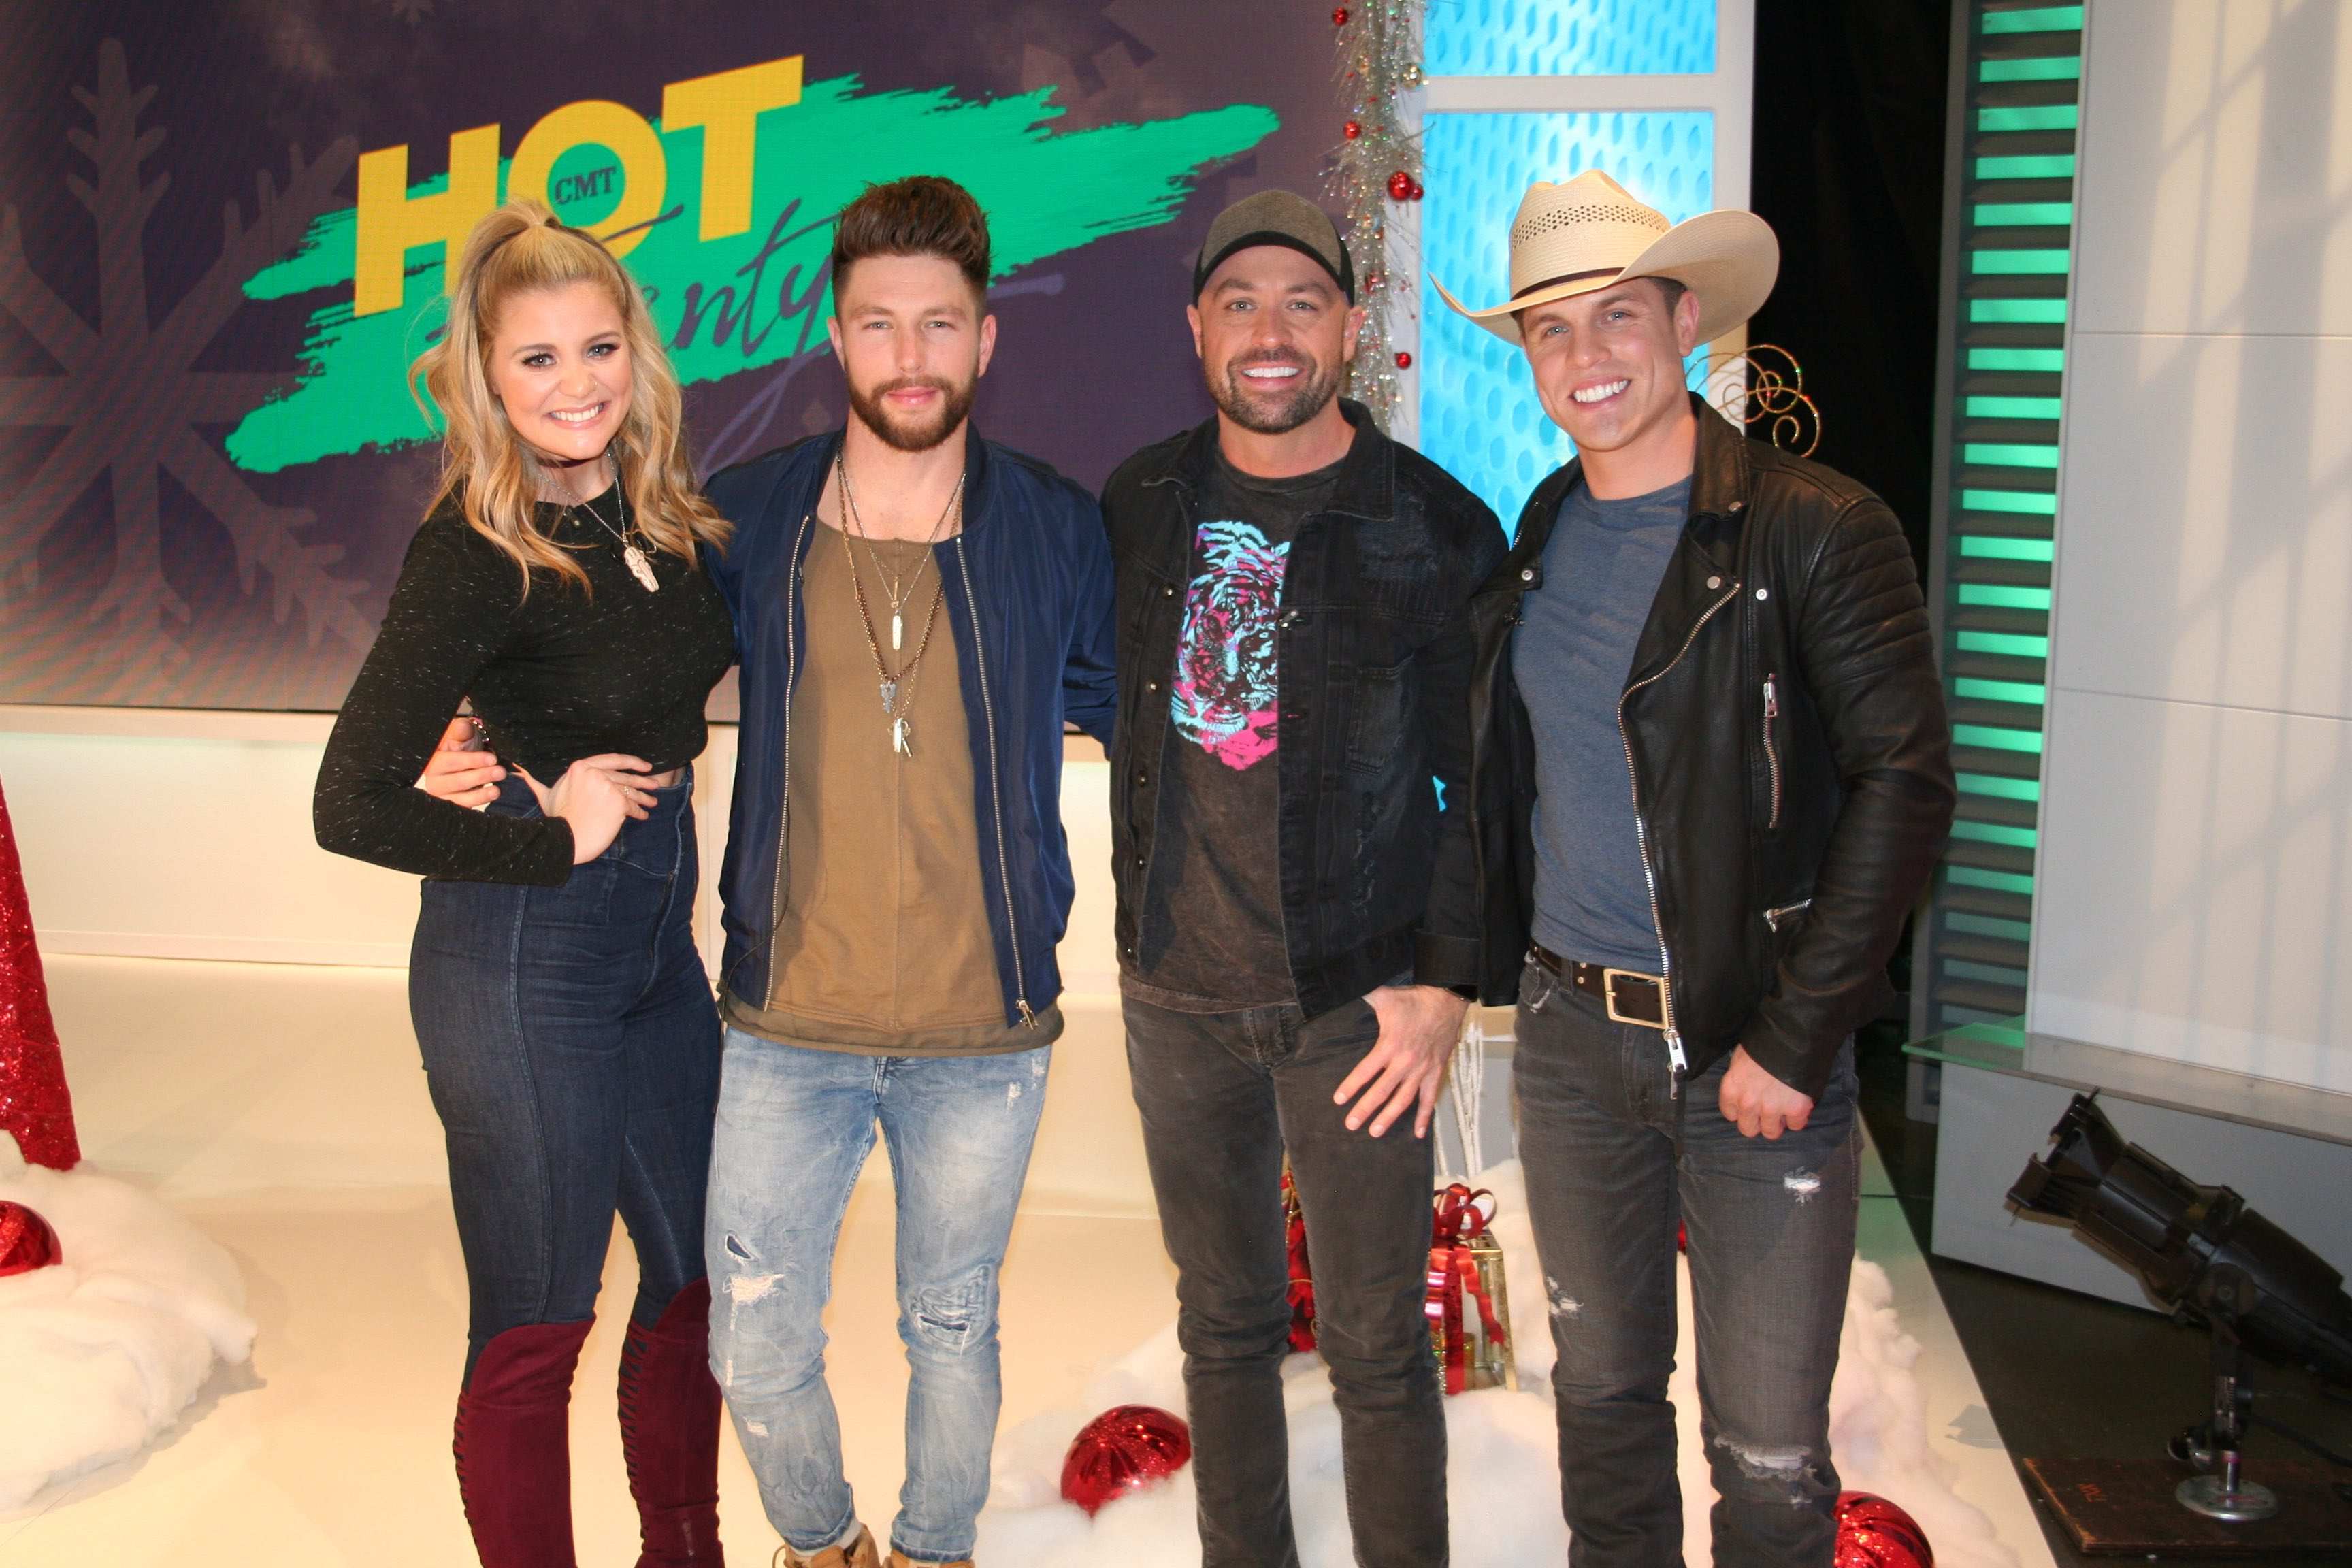 LAUREN ALAINA, CHRIS LANE, CODY ALAN, DUSTIN LYNCH